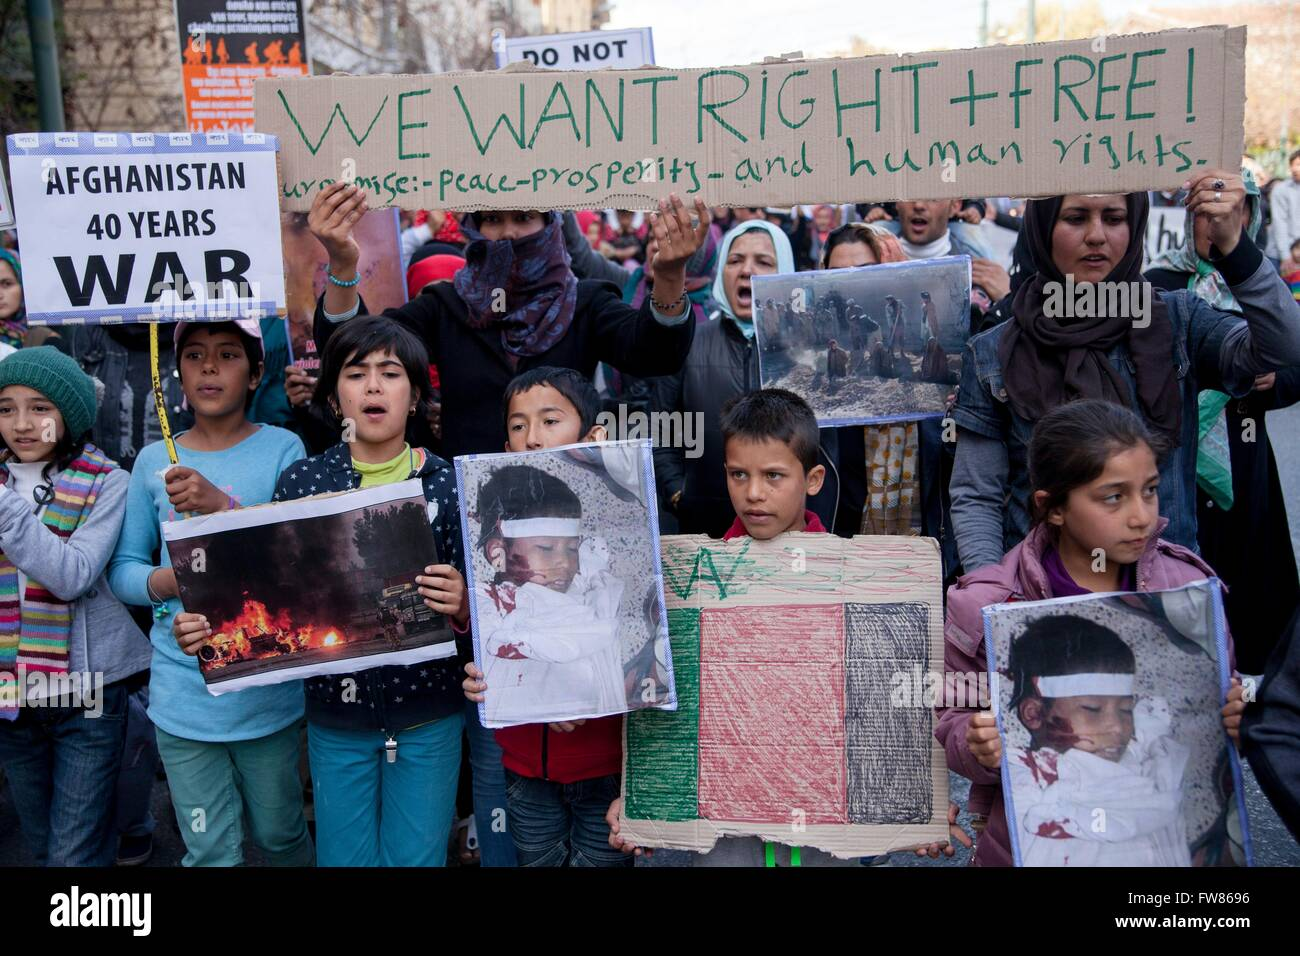 Afghan refugees protest in Athens against closed European borders. Sign demanding 'Rights and Freedom'. - Stock Image